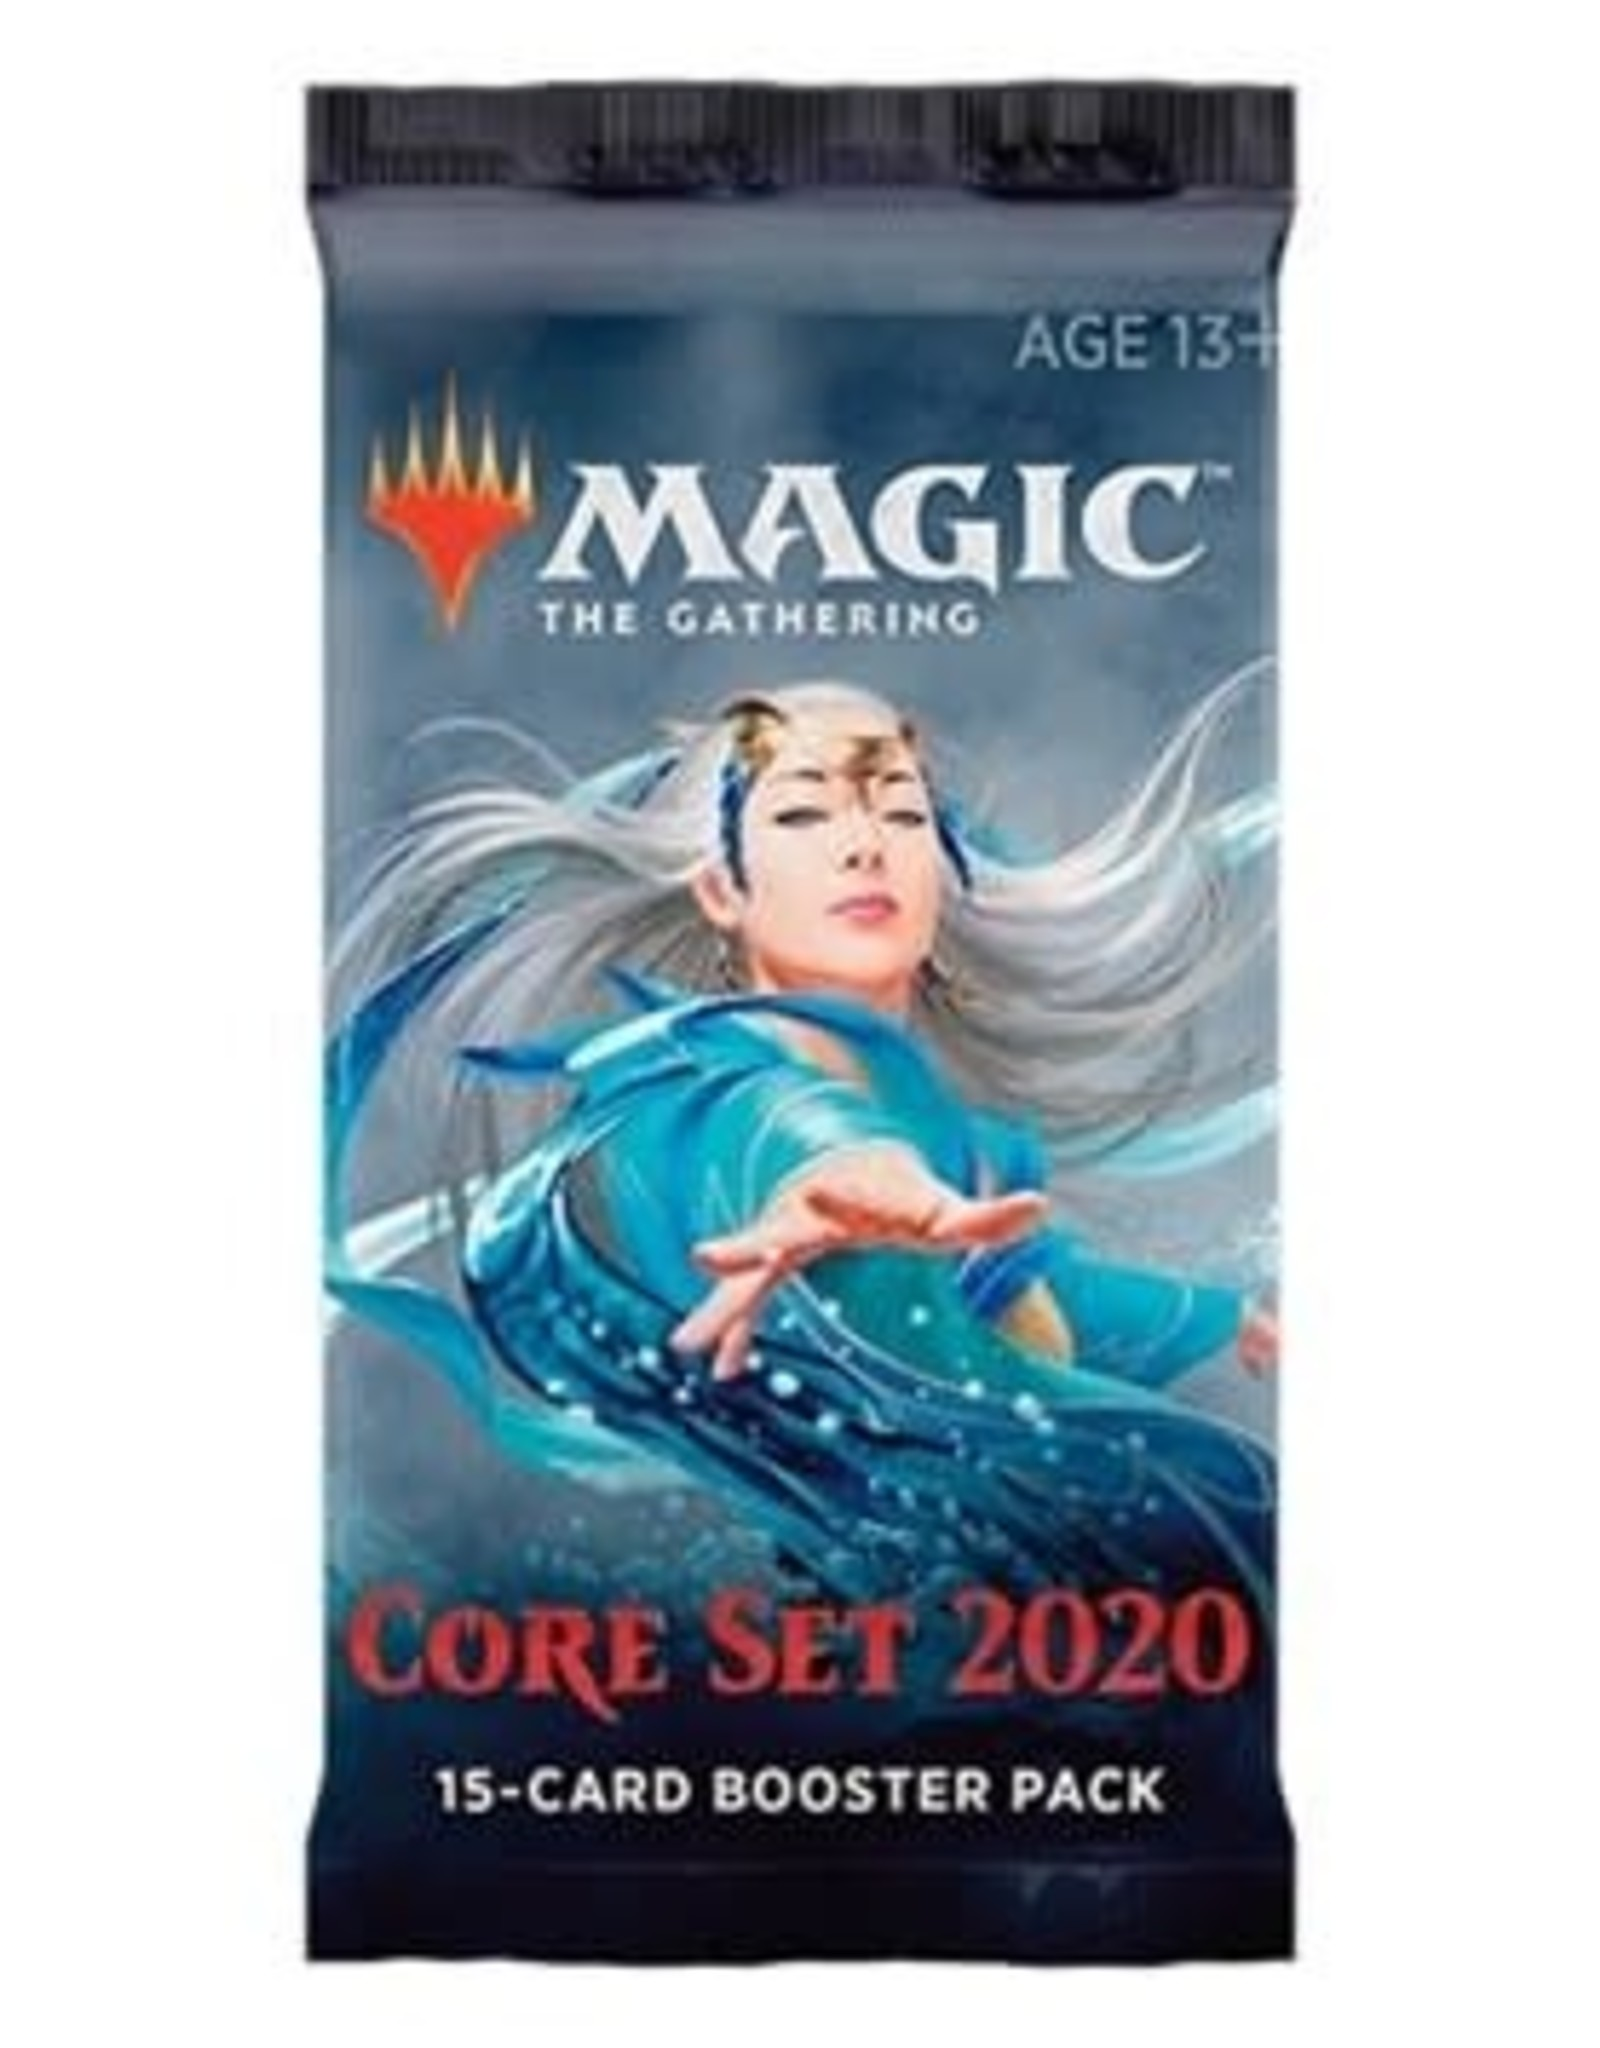 Core Set 2020 Booster Pack